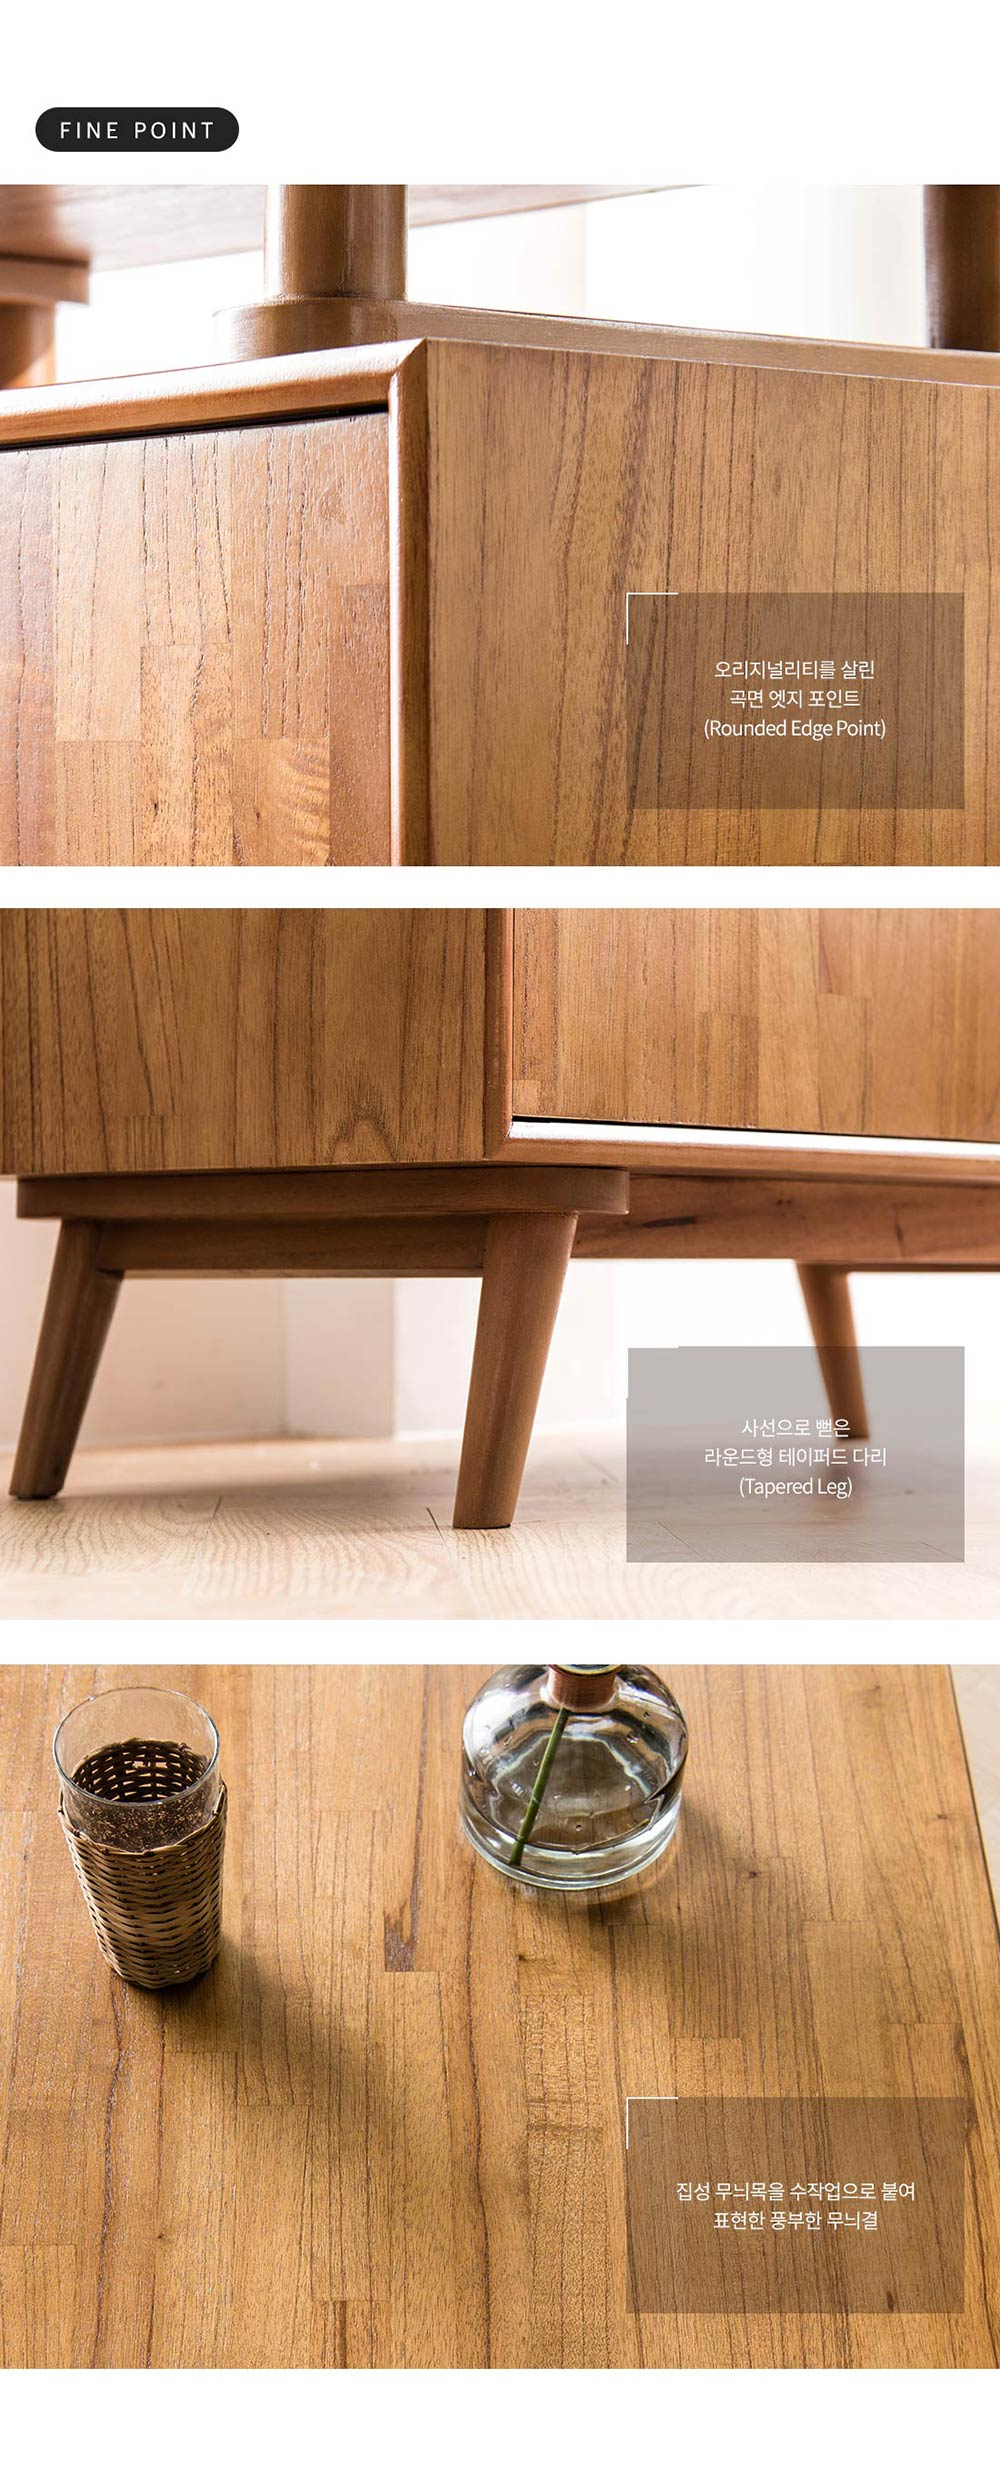 New_Retro_Standing_Mirror_Details_1_Singapore_Online_Furniture_by_born_in_colour